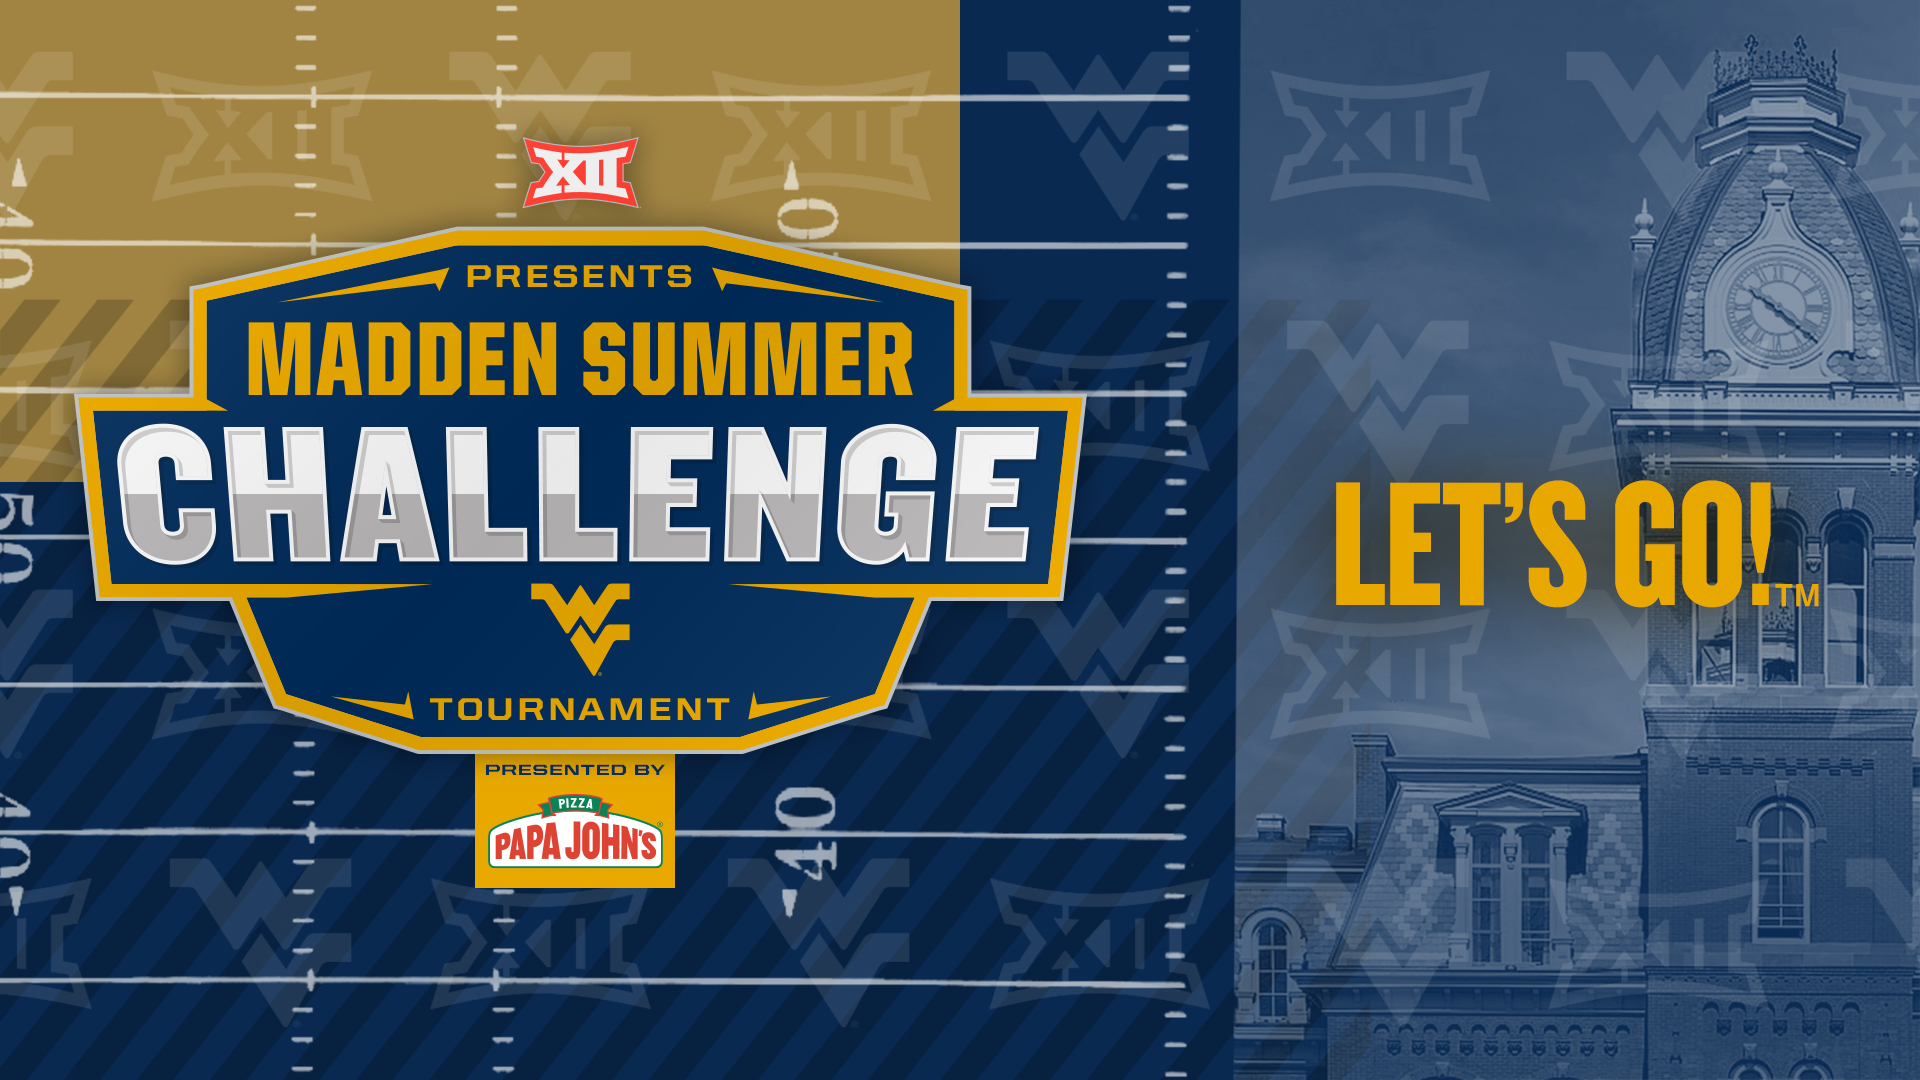 WVU: Big 12 Conference, Learfield IMG College Unveil First-Ever Madden NFL 20 Esports Competition for 10 Member Schools